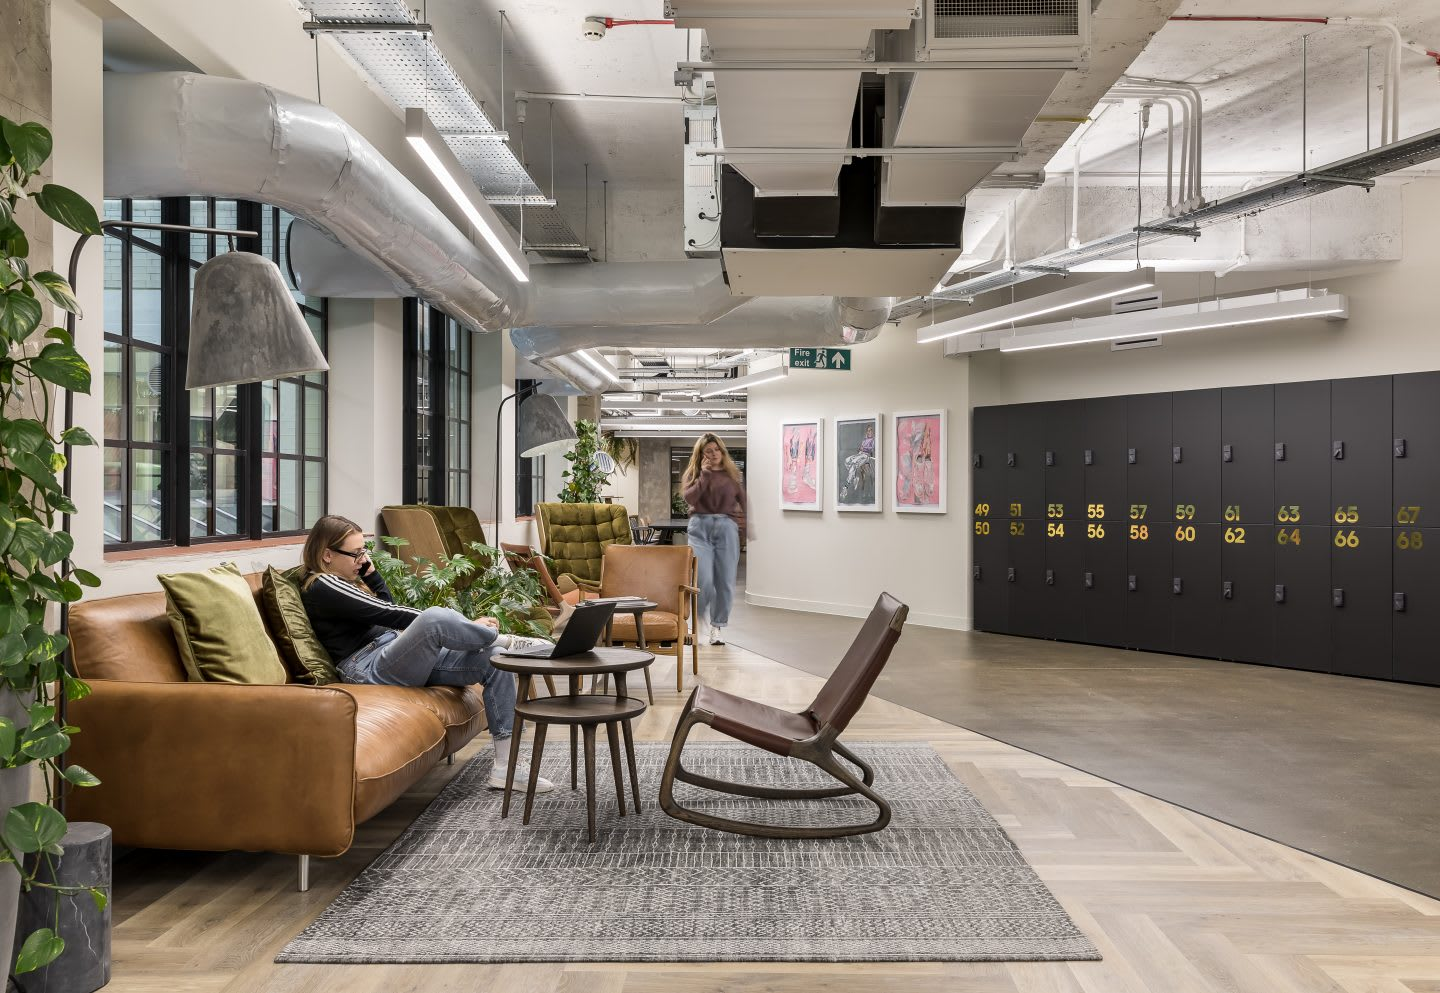 couch in open working area, workplaces, adidas company culture collaboration, developing creativity, working in adidas